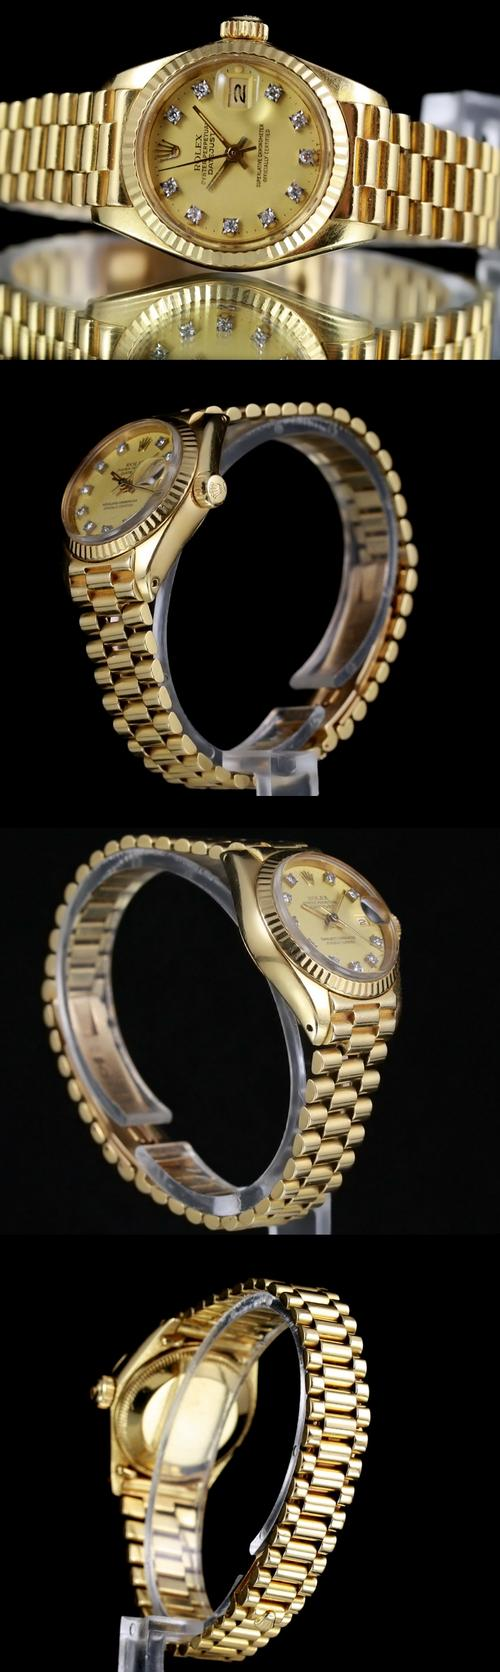 18ct gold rolex christmas gift sale